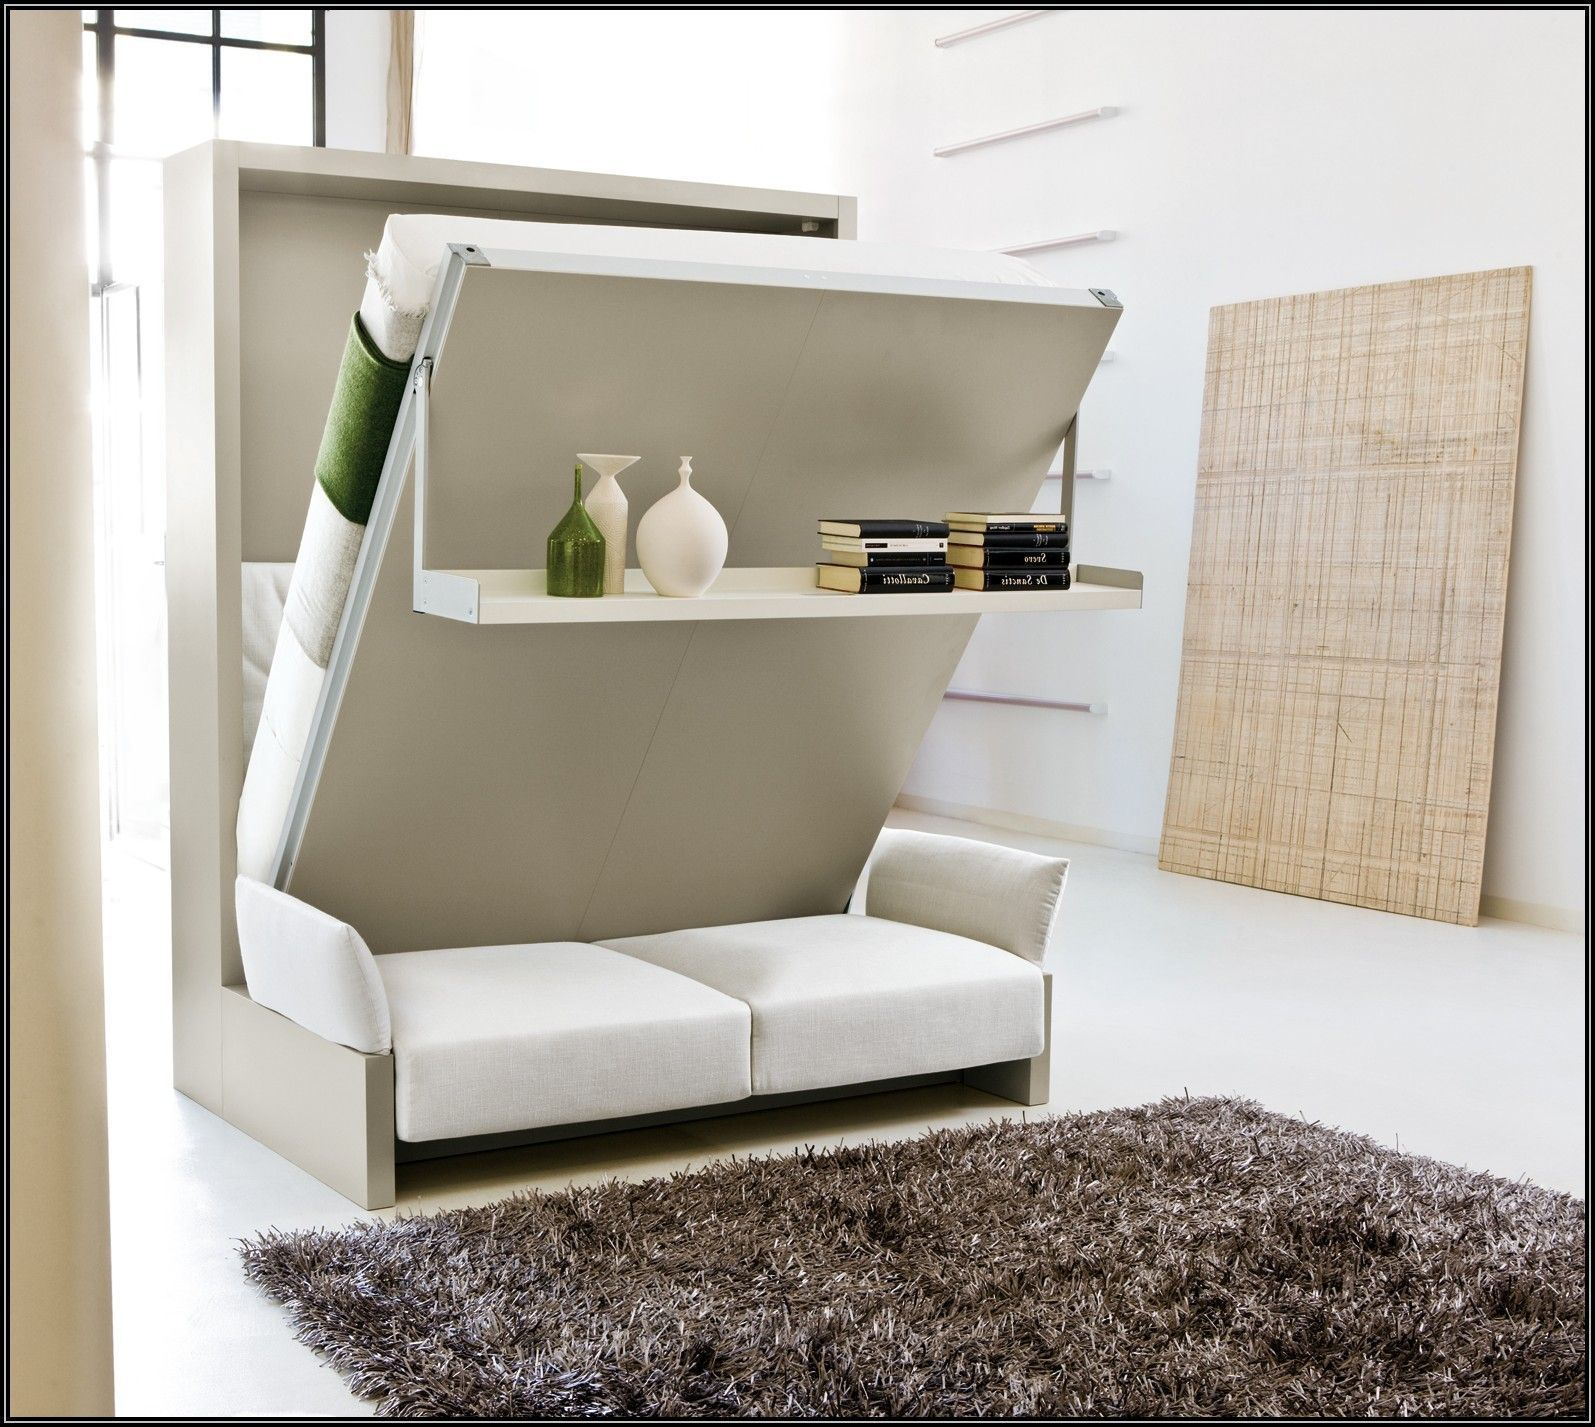 - Save Small Space In A Bedroom Using Murphy Bed IKEA: Outstanding